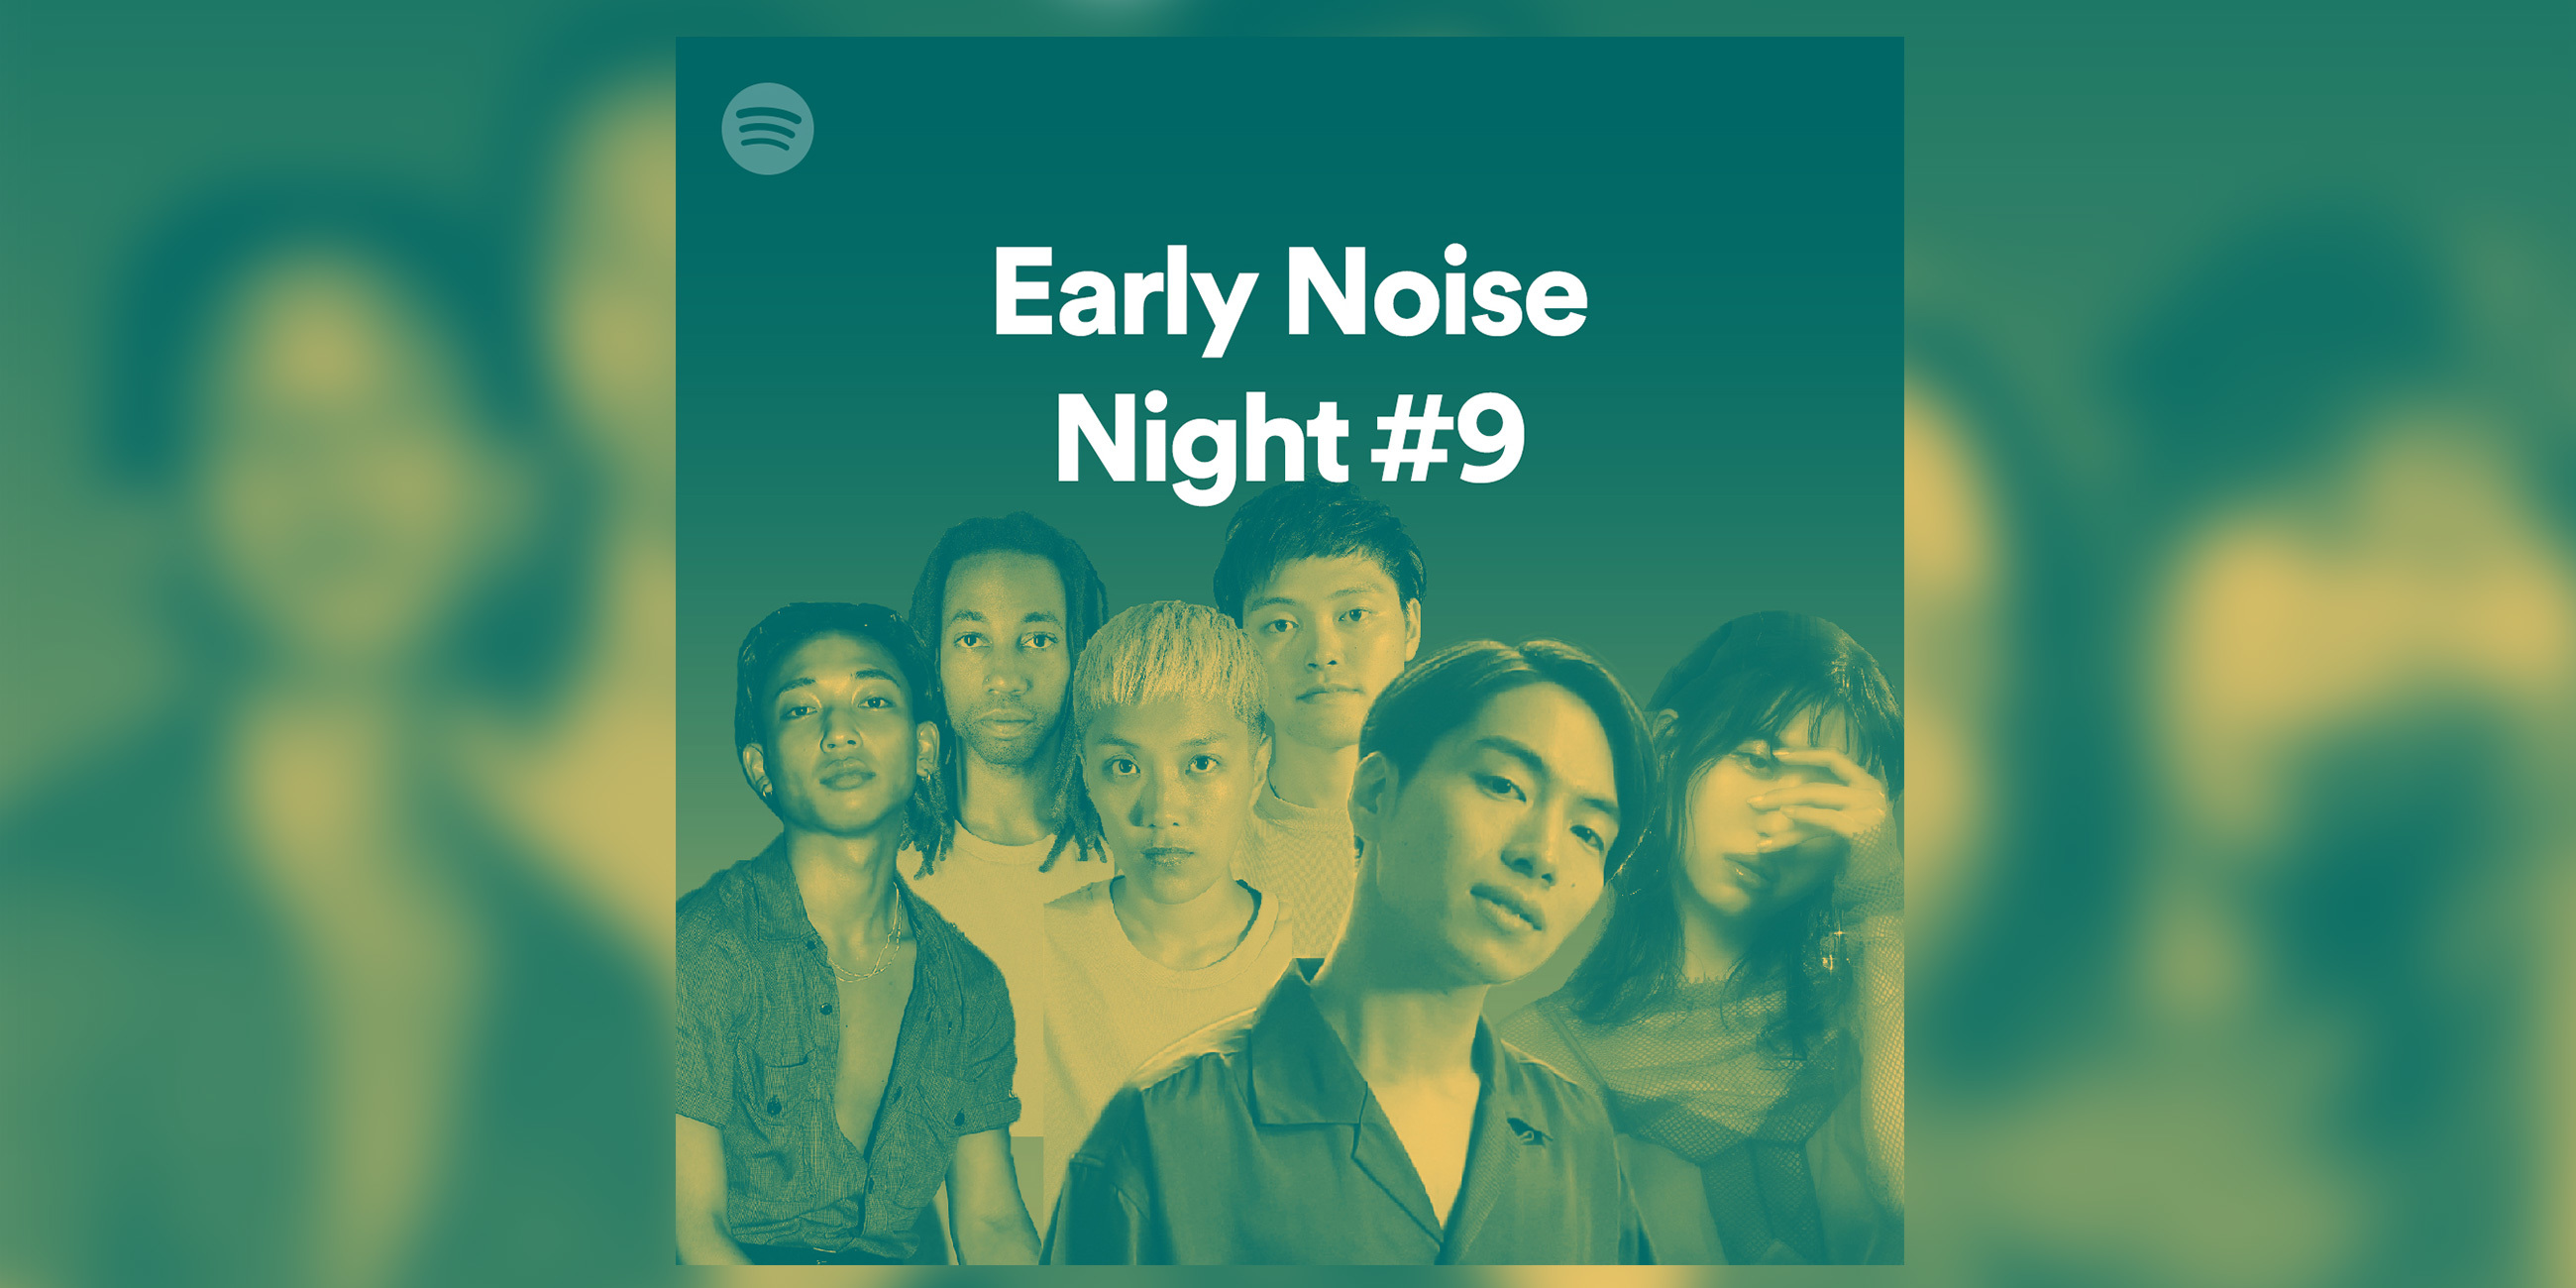 『Spotify Early Noise Night #9』